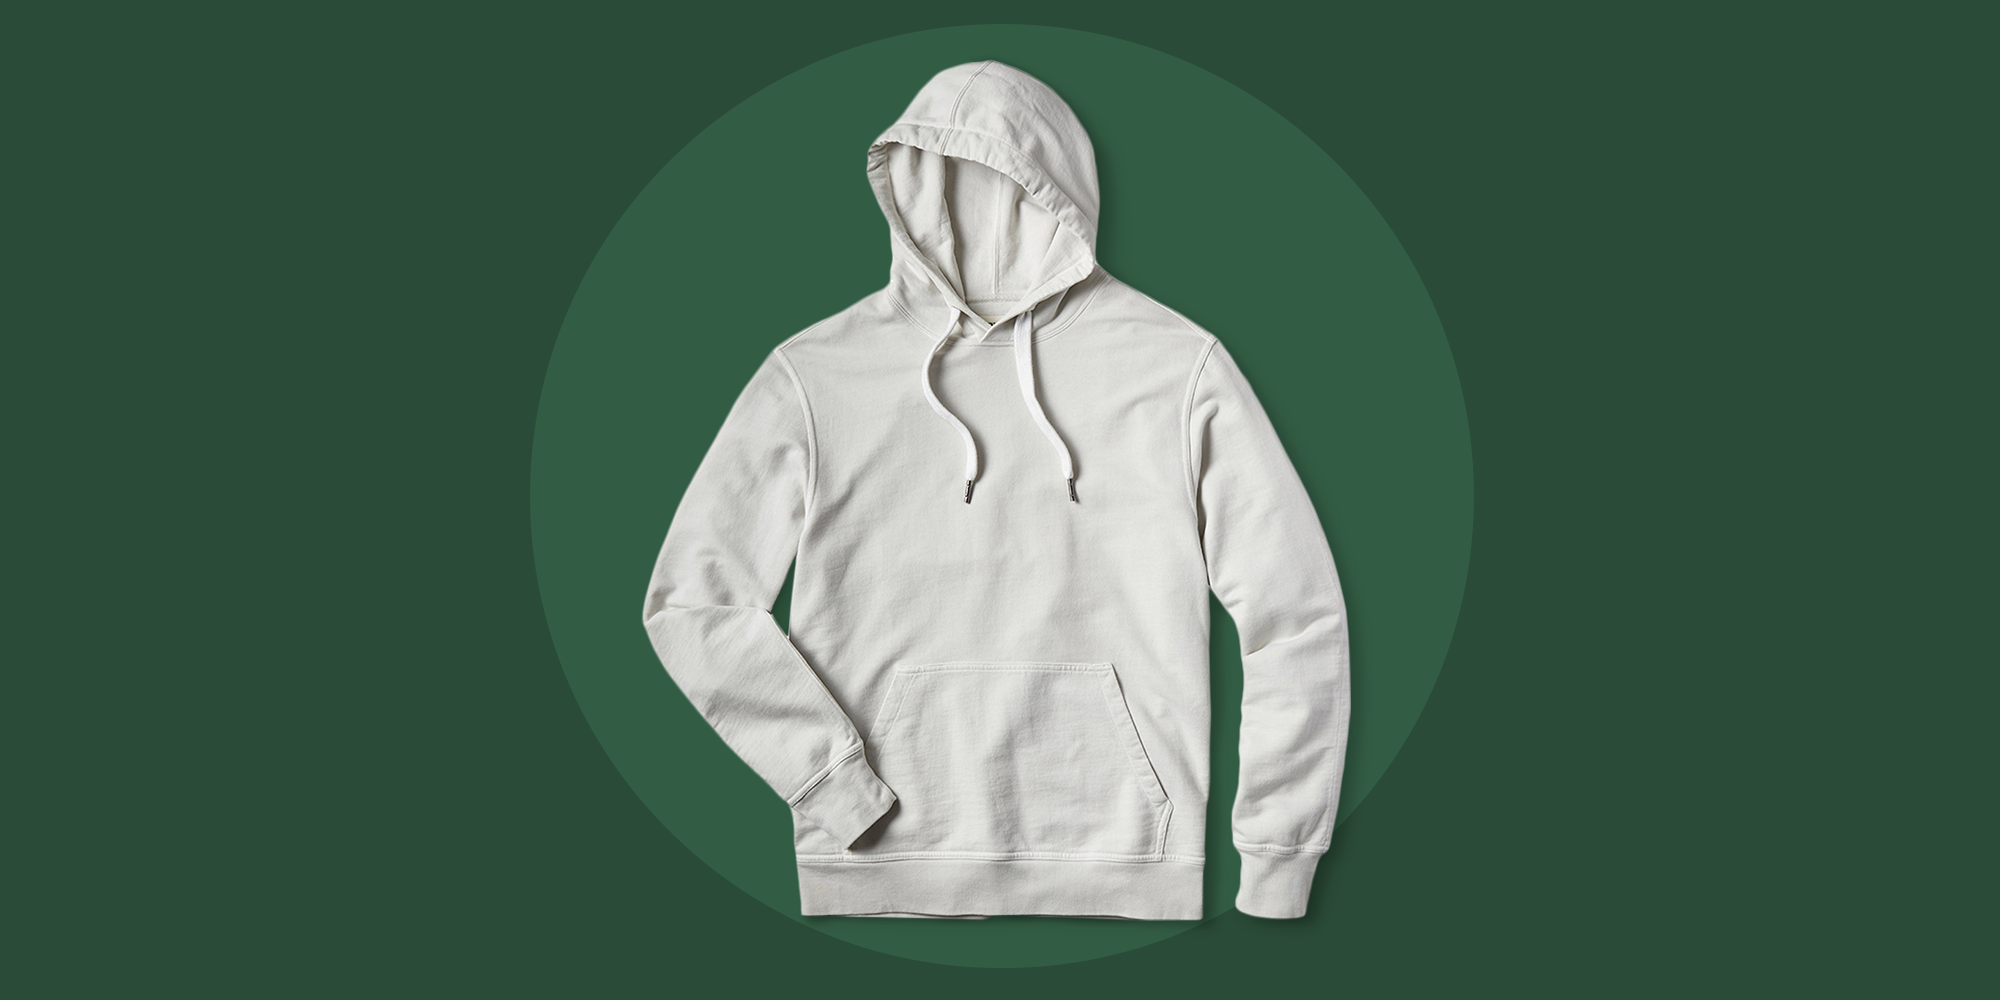 This $85 Hoodie Feels Vintage, Looks Fresh, and Is Office-Ready